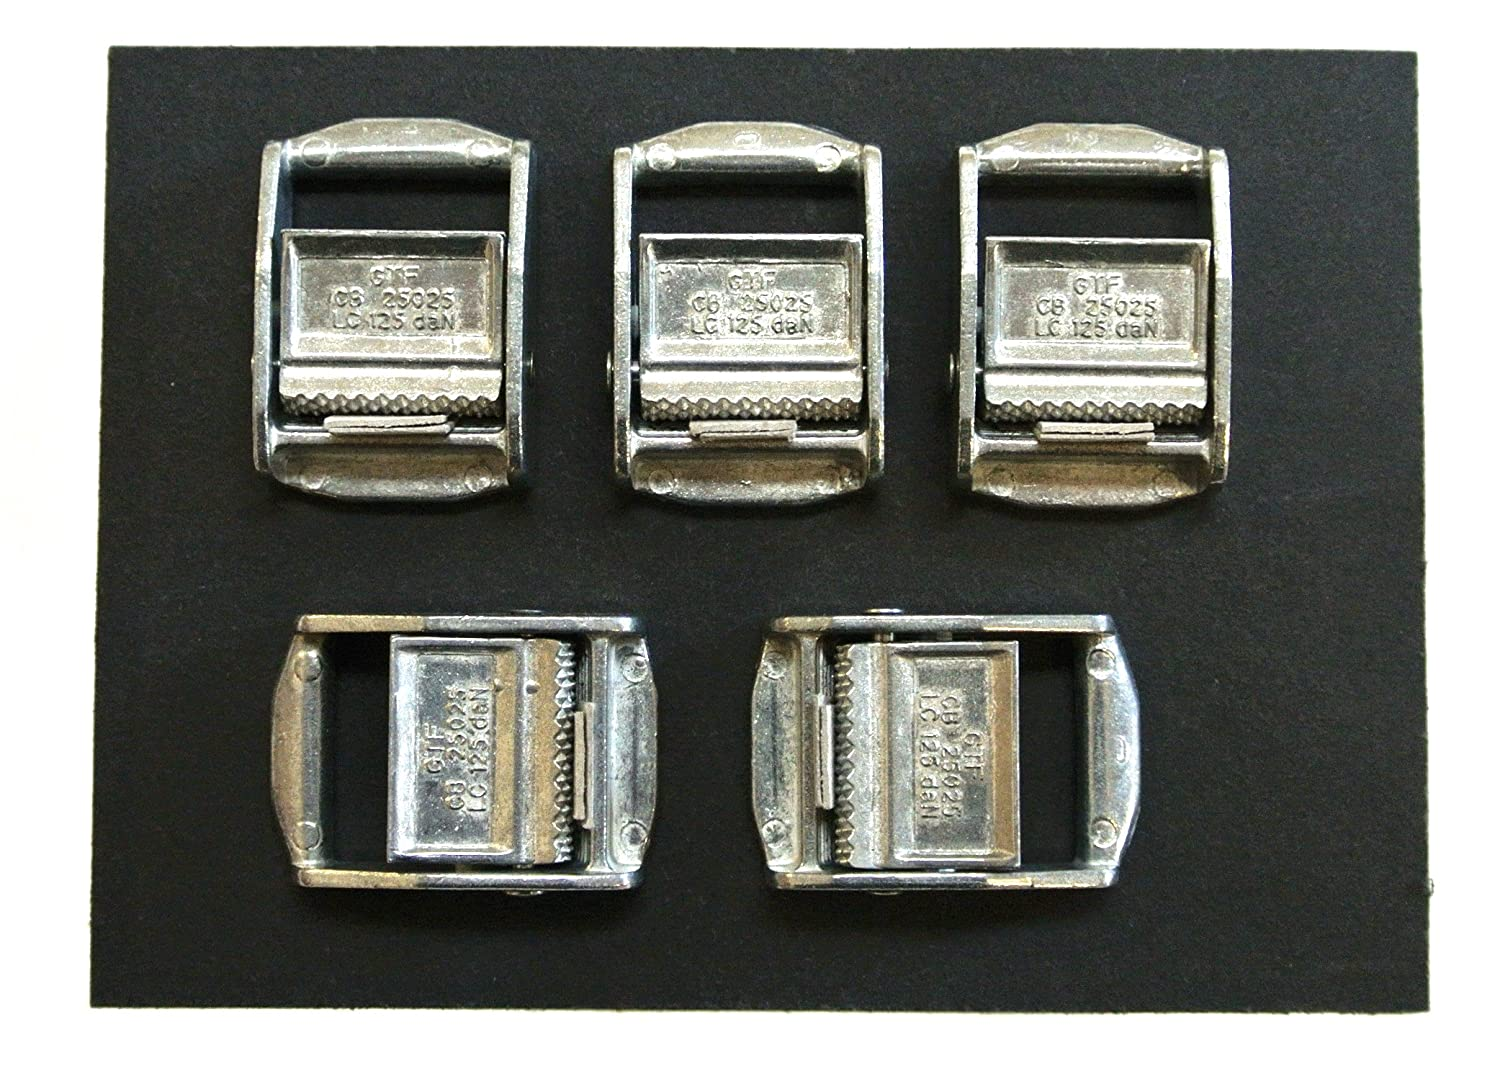 25mm Metal Cam Buckles For Webbing 250kg Webbing,Straps,Clasps Quantity 2